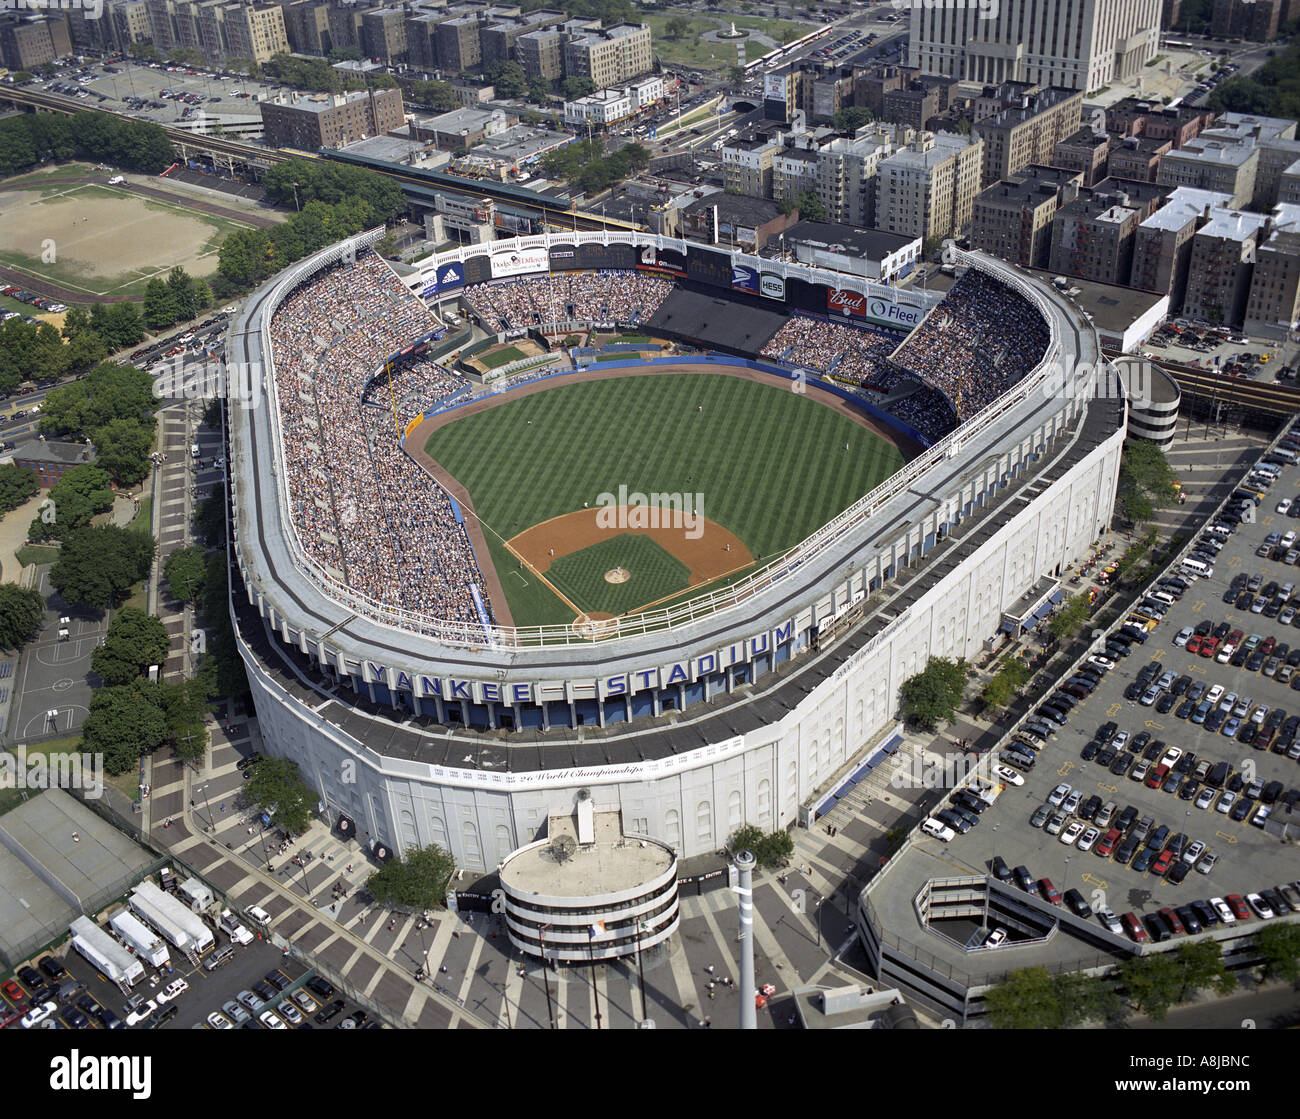 Ankee Stadium Is Located In Which New York City Borough